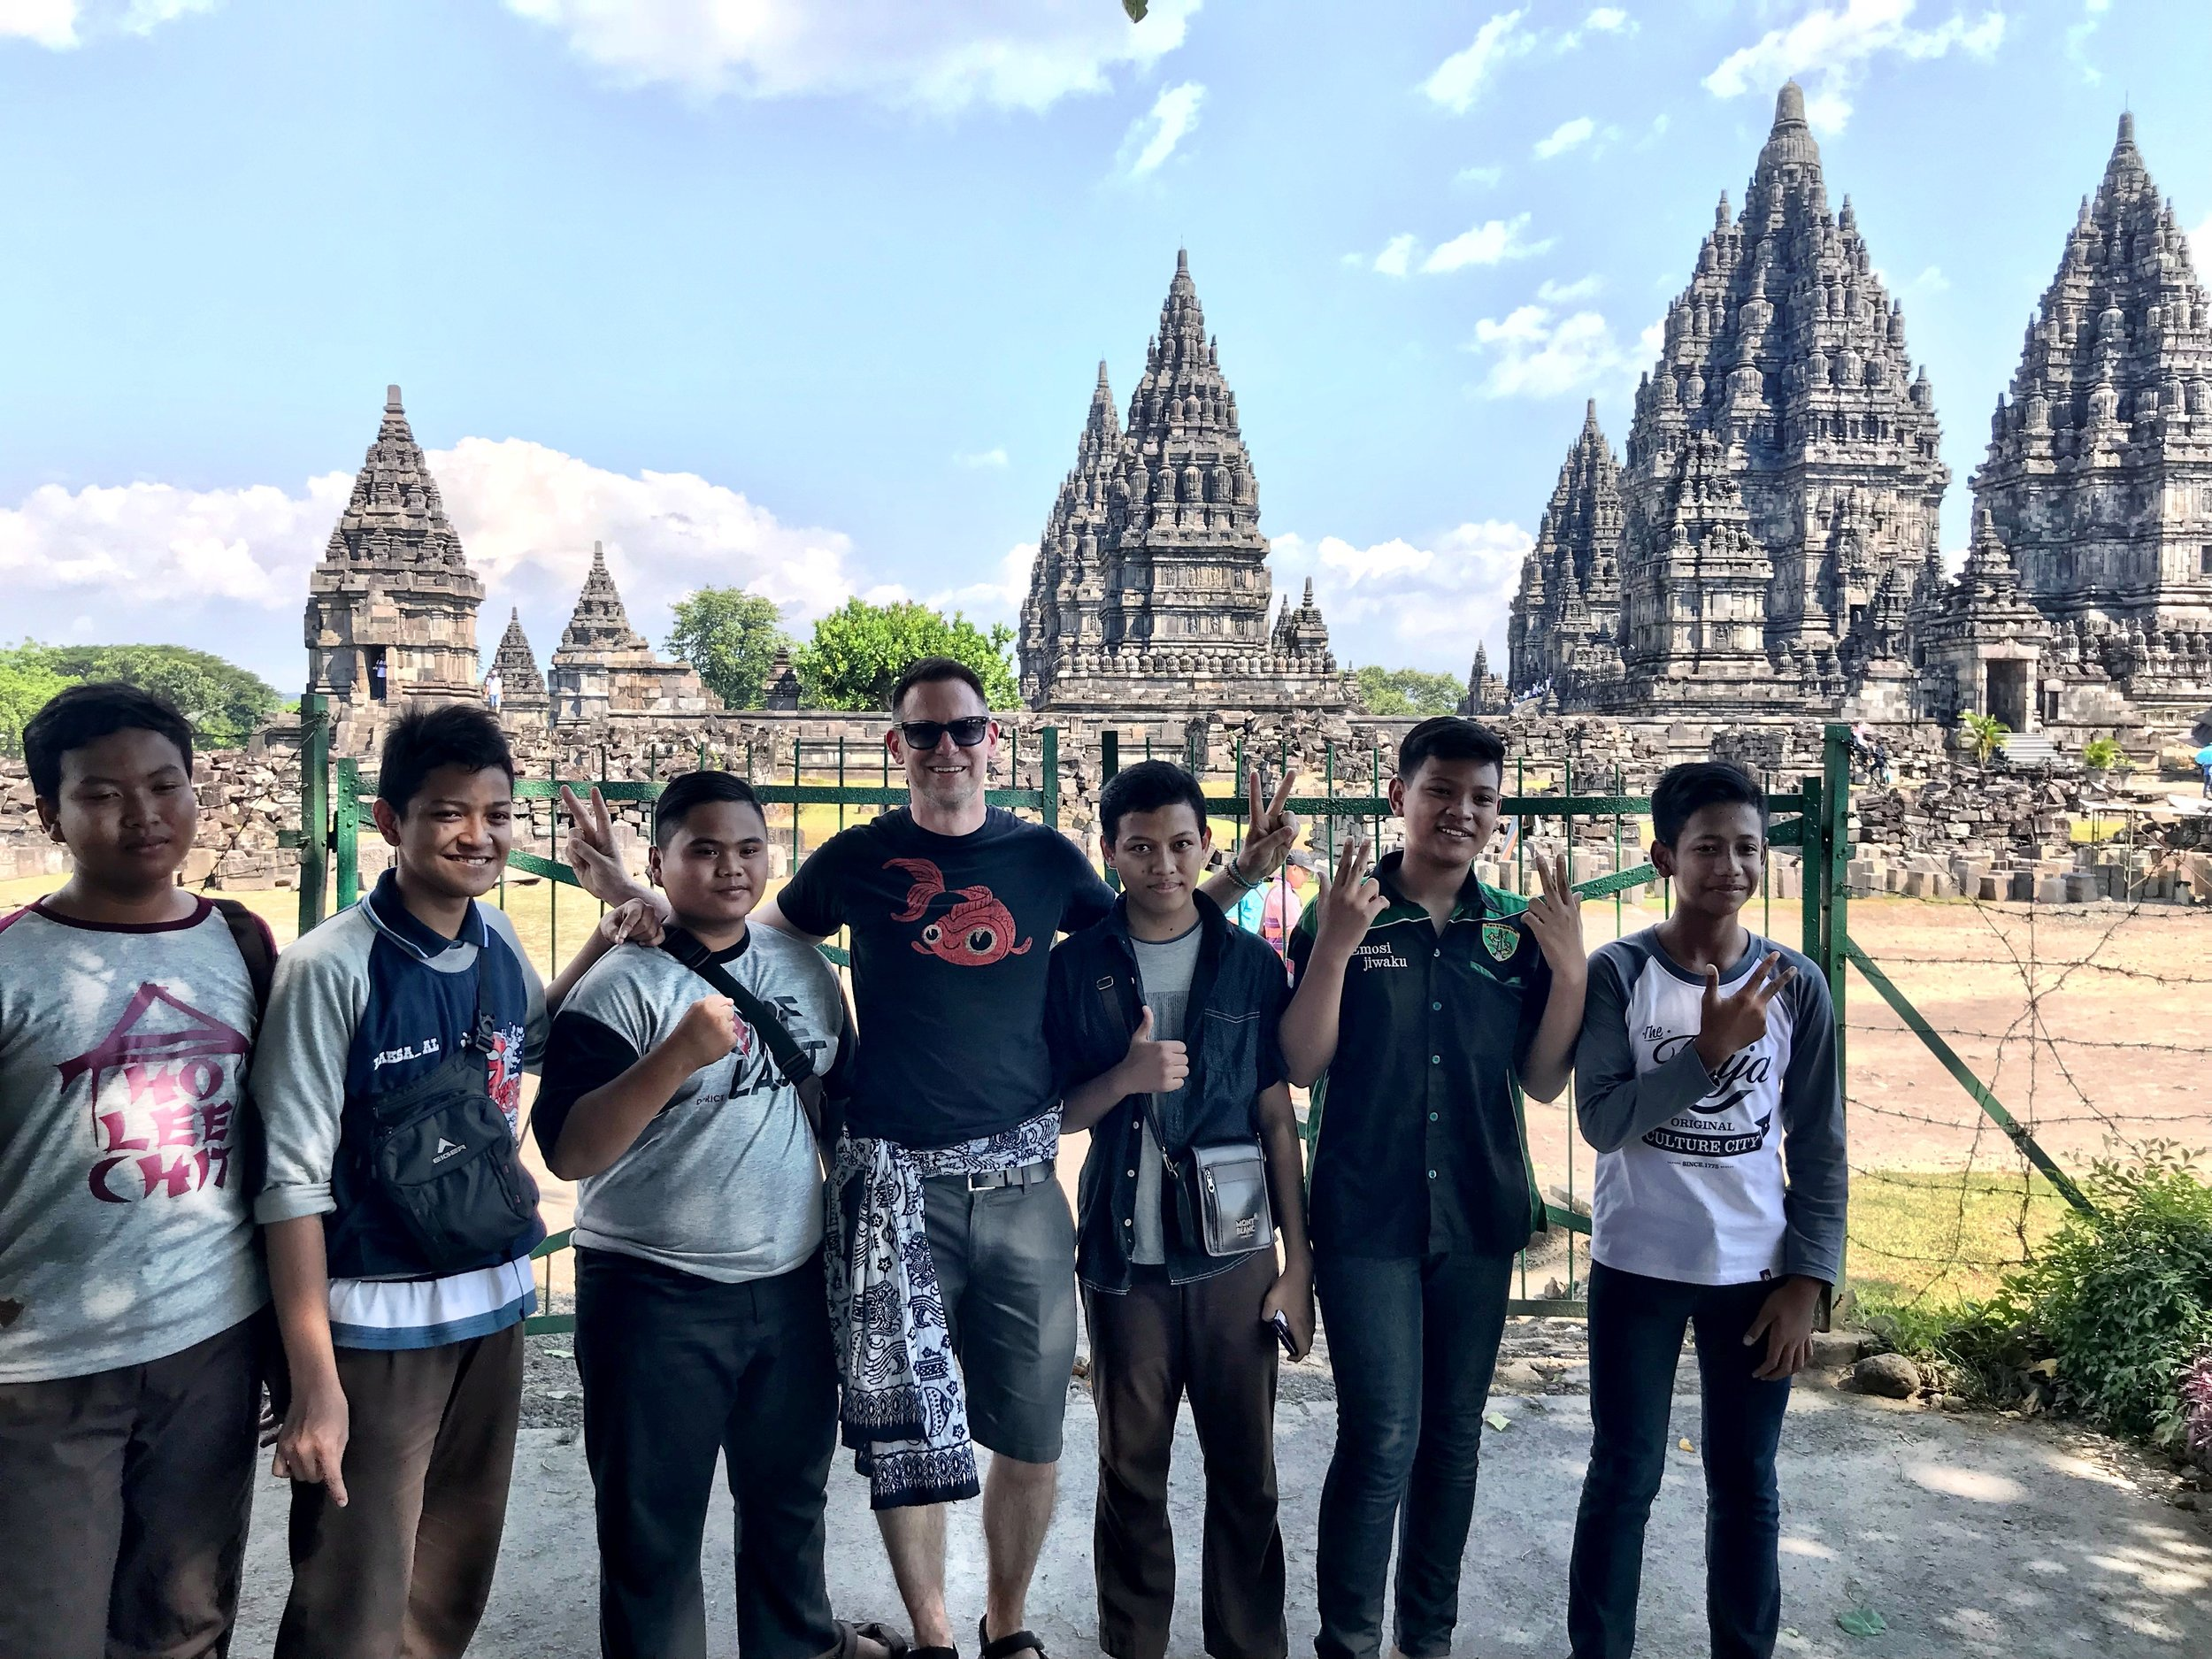 Duke poses with a group of local boys, with Prambanan behind them, looking like a fake backdrop